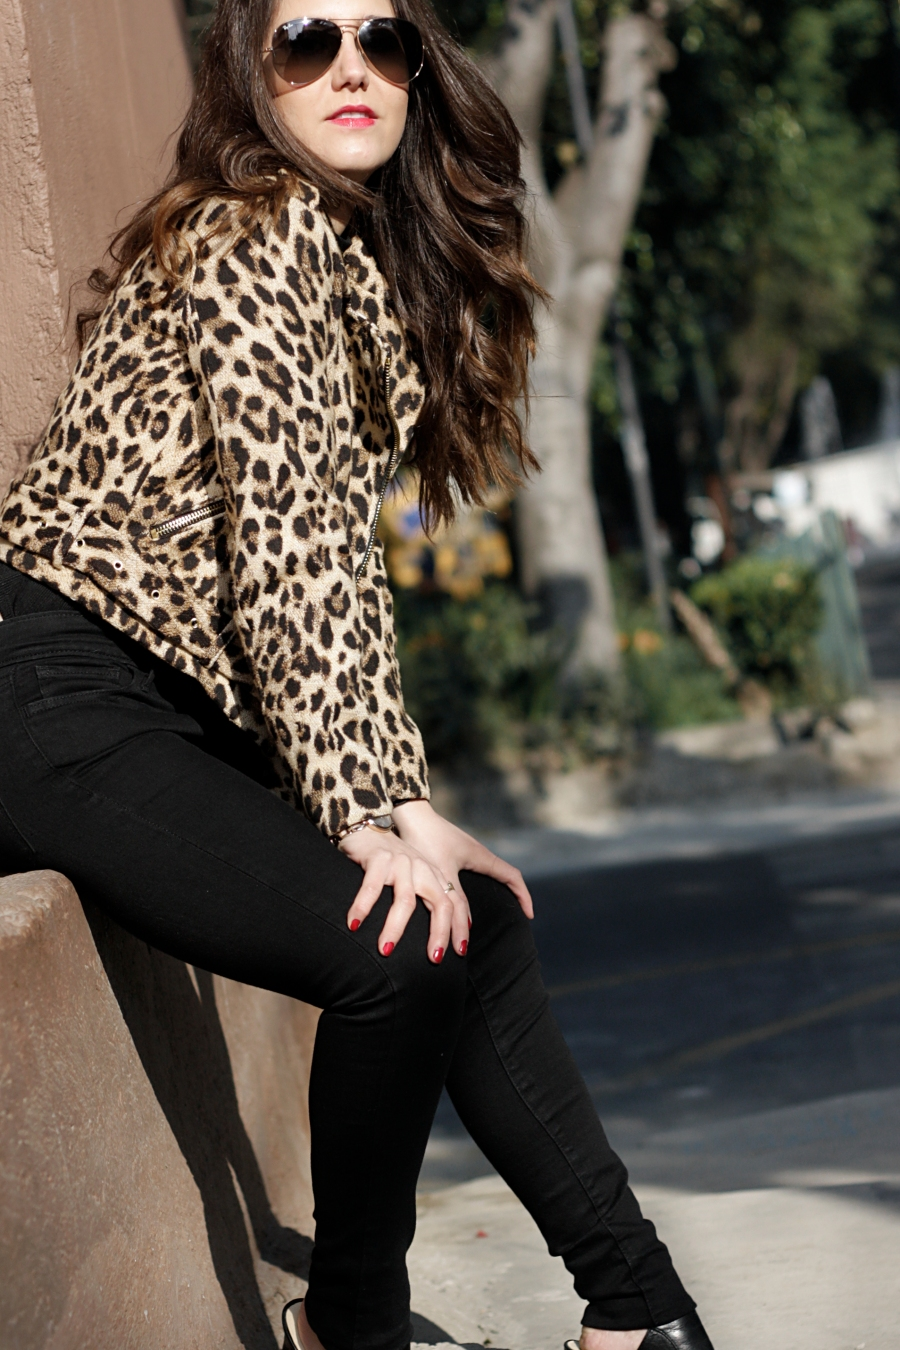 leopardjacket1-atuendo29